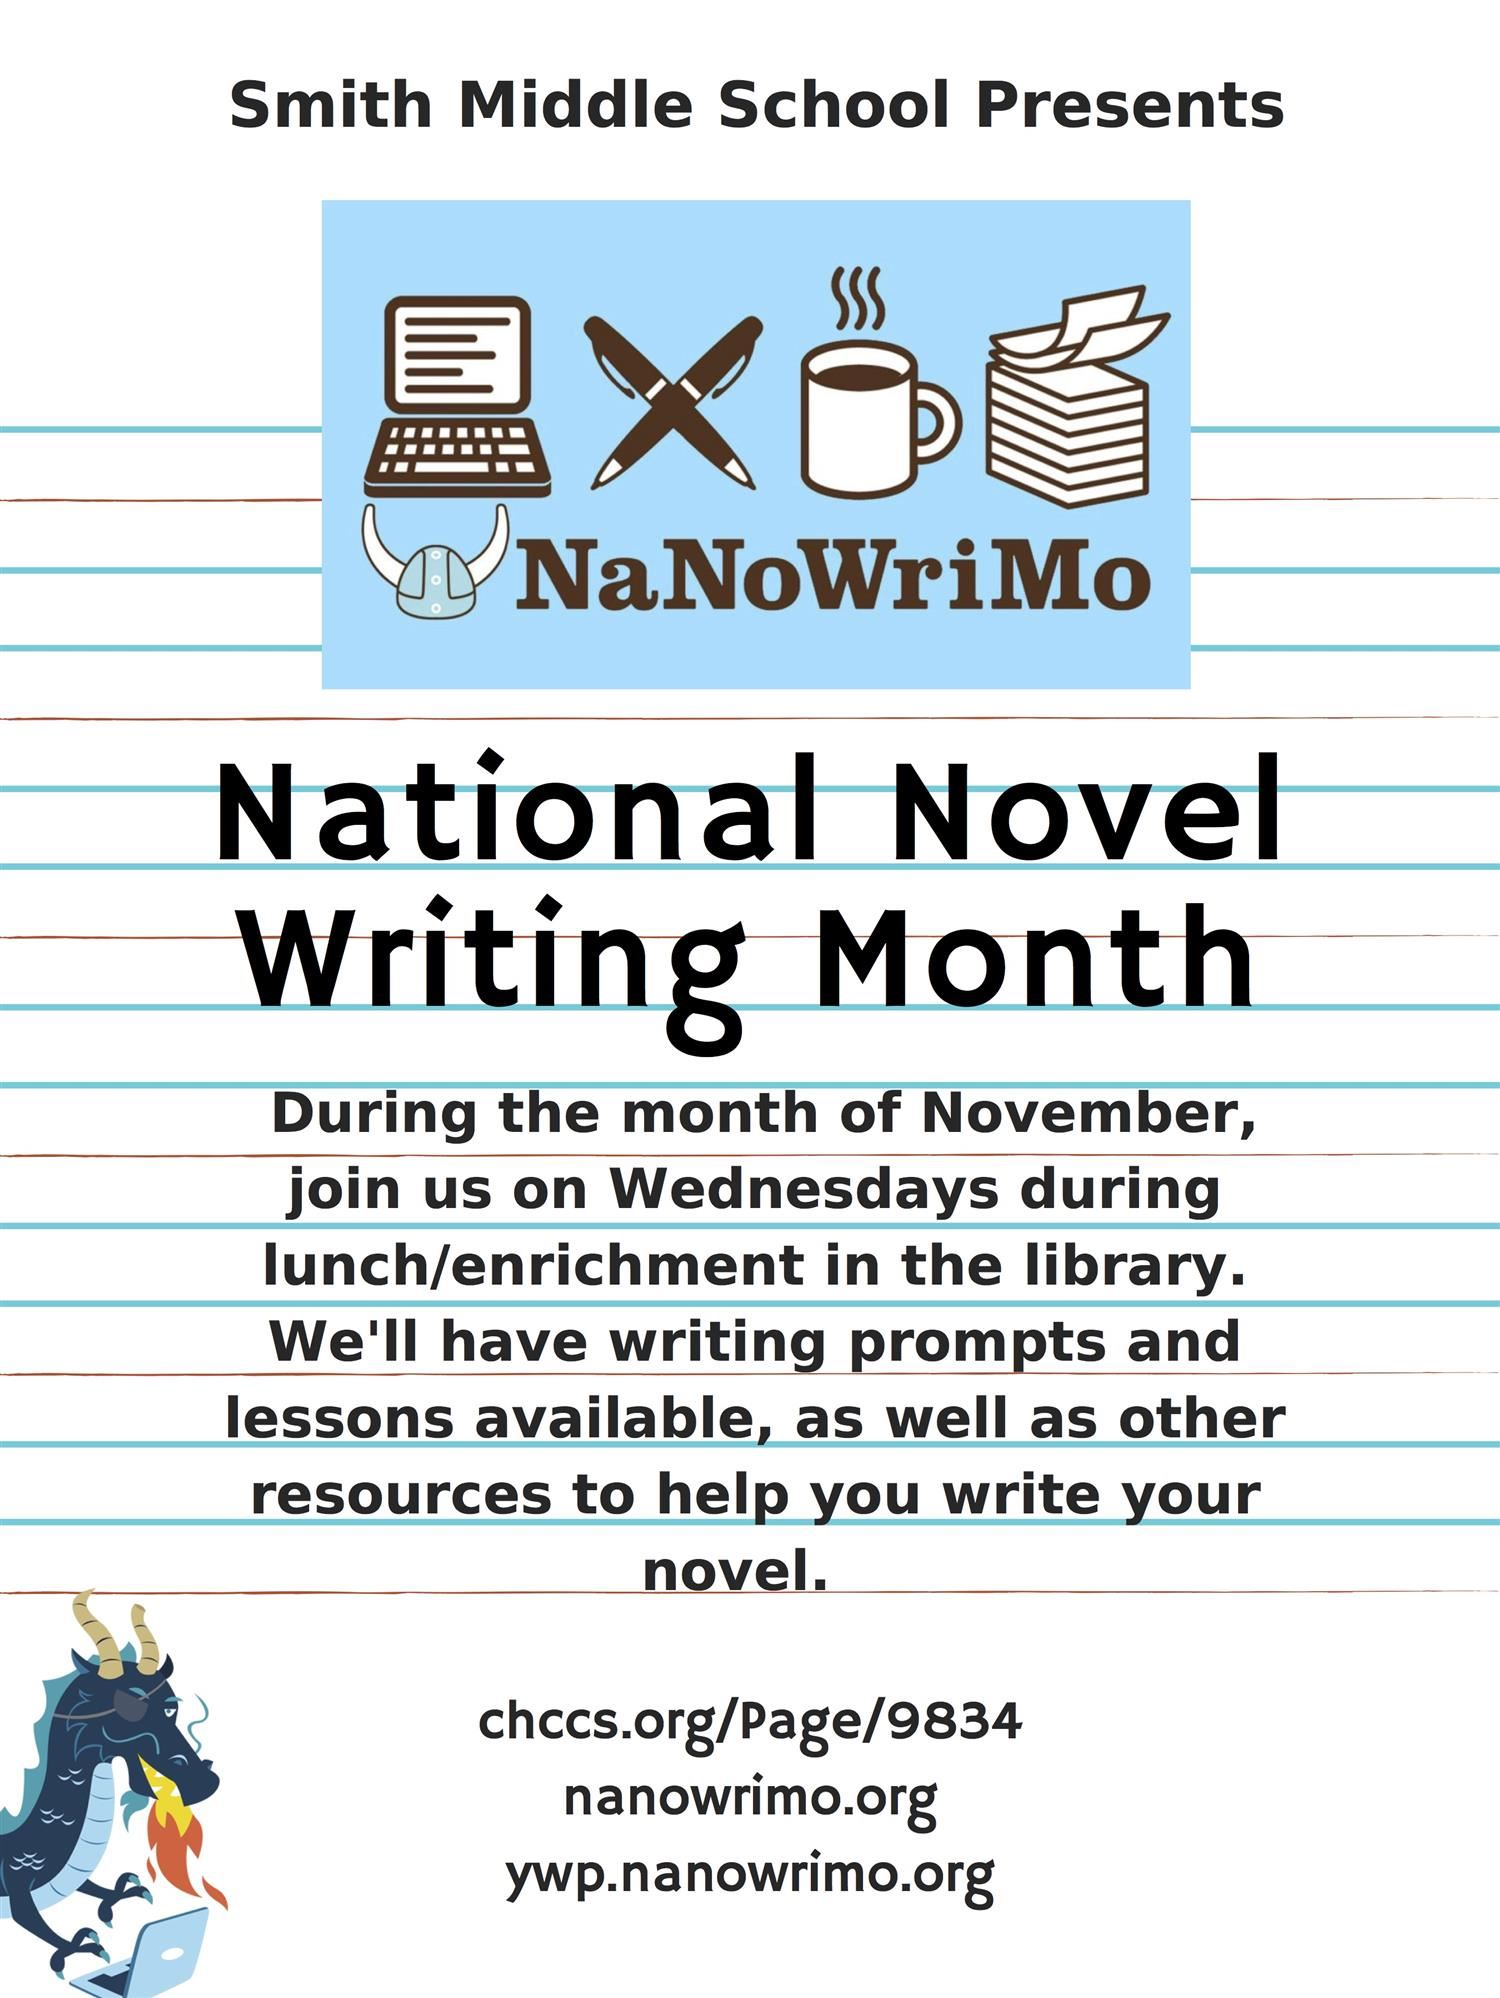 NaNoWrimo Poster highlighting library programming